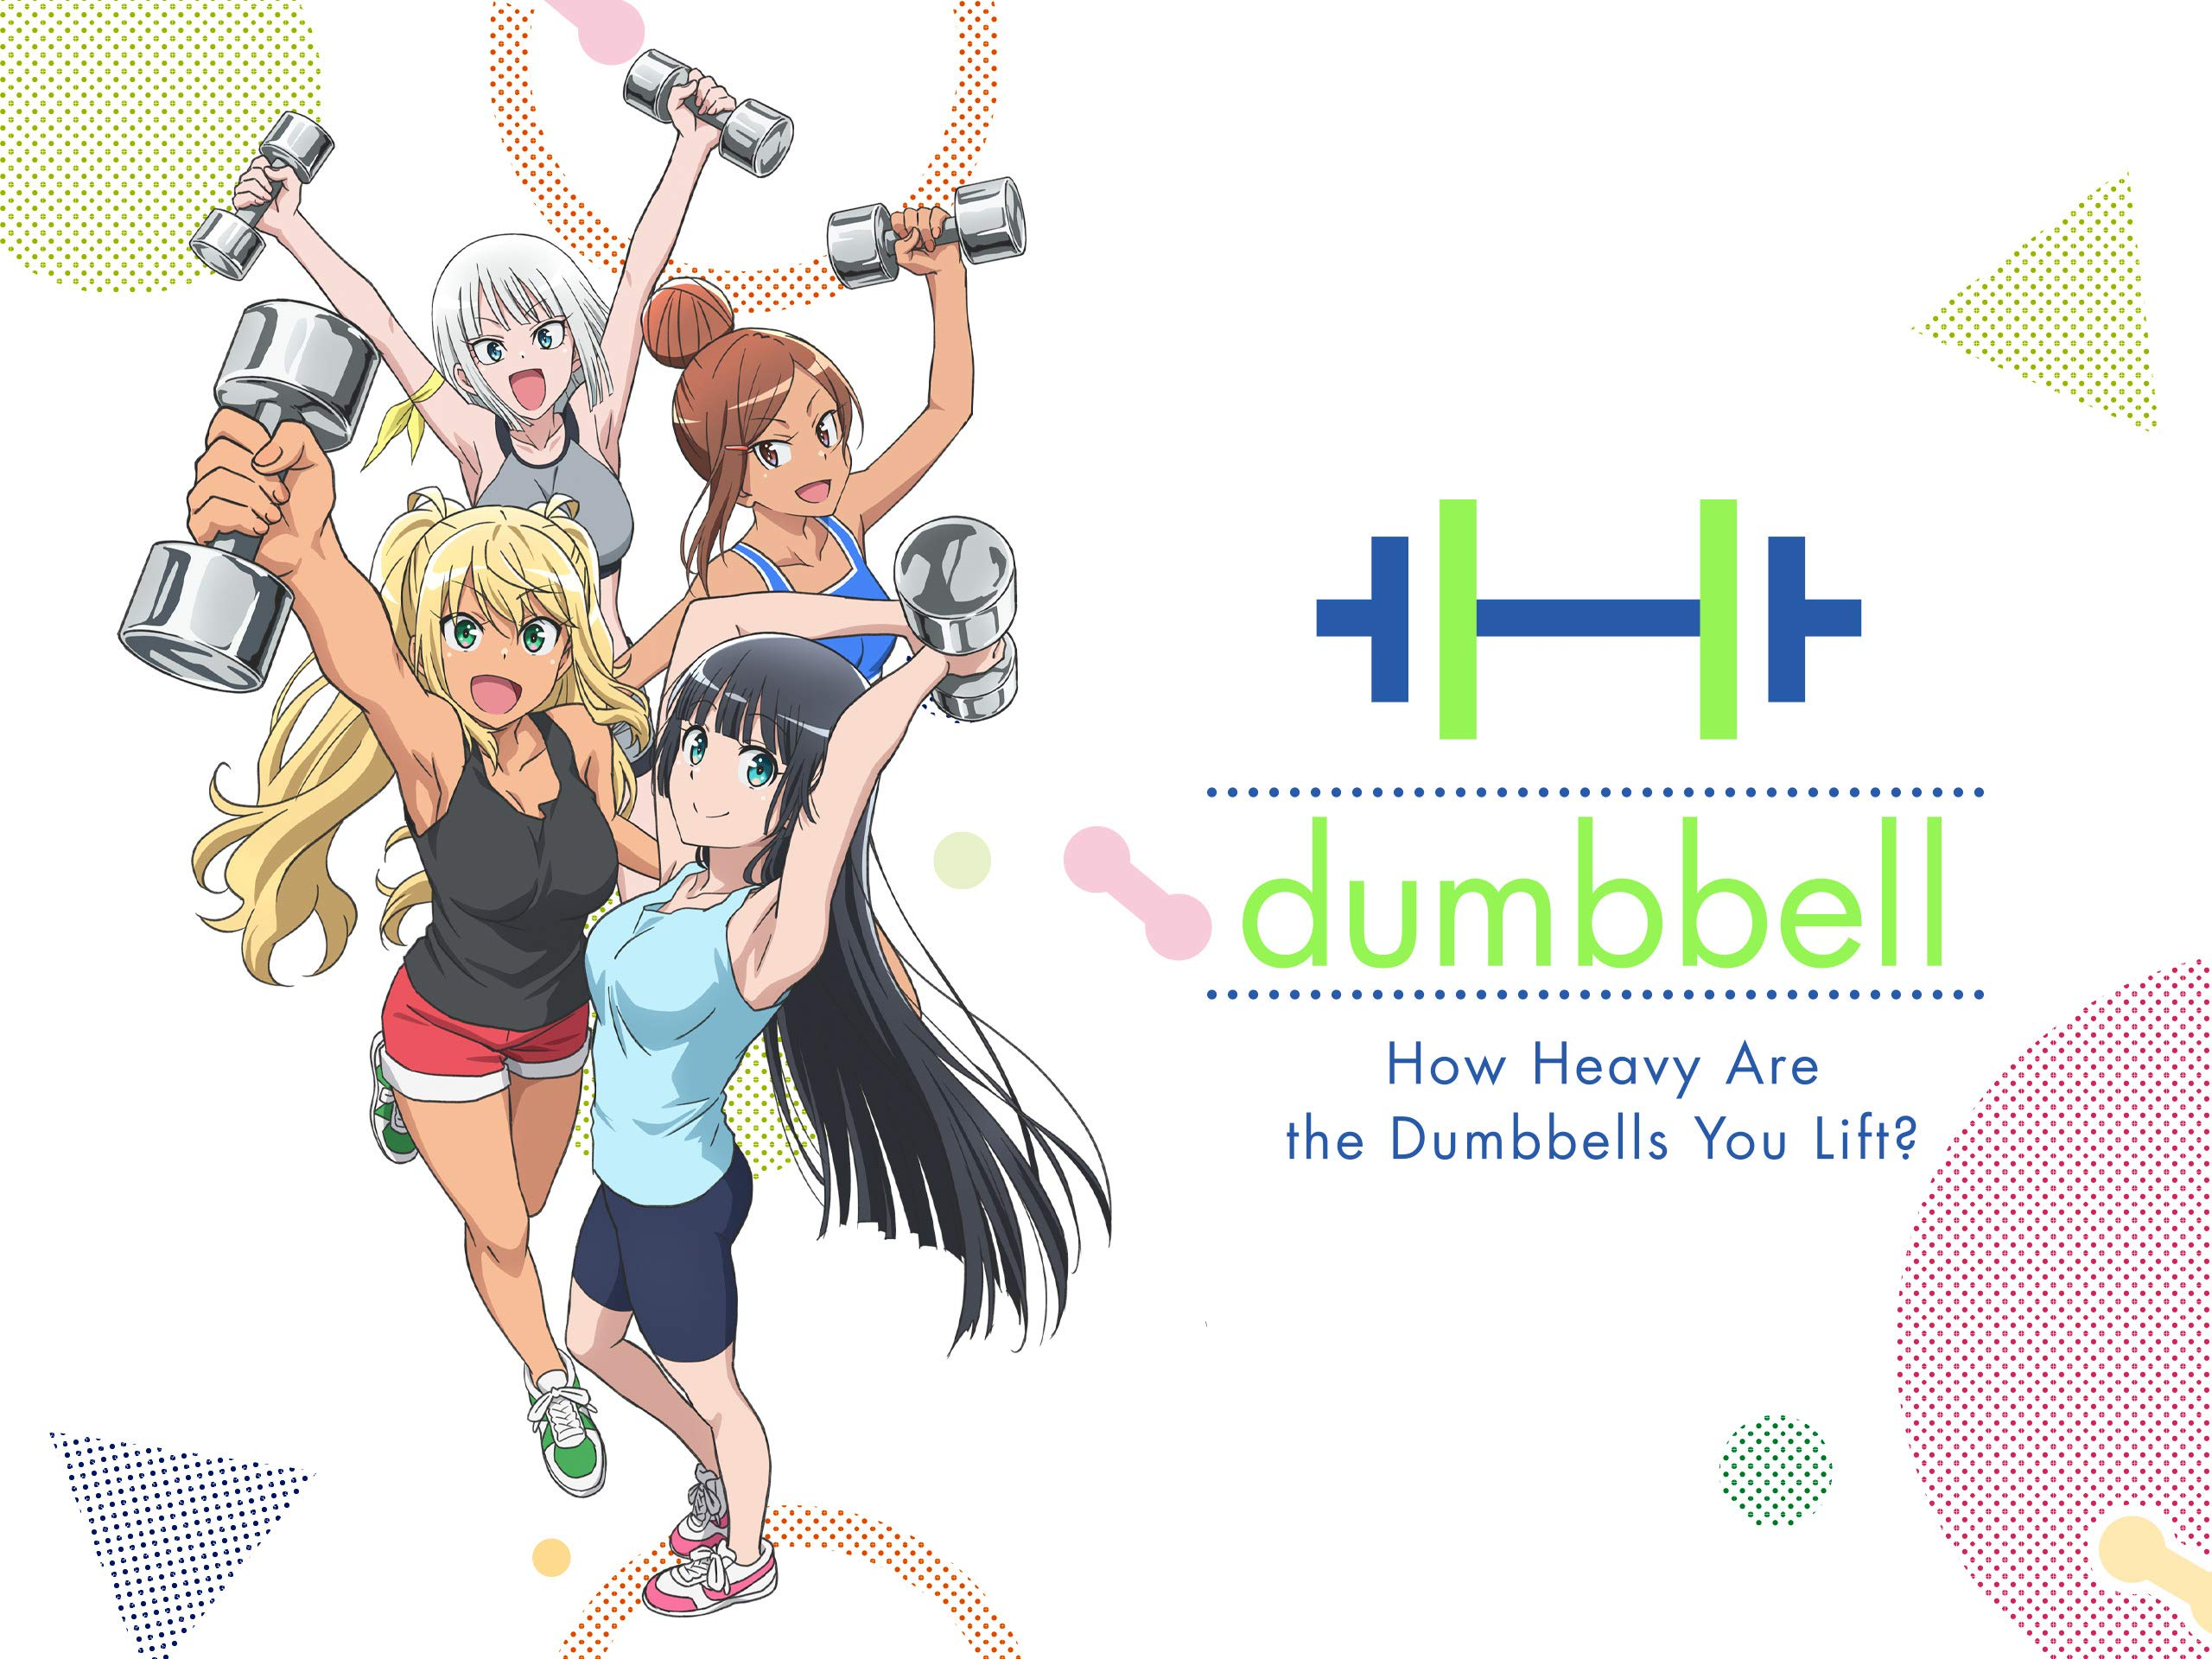 Dumbbell Nan Kilo Moteru? Episode 1-12 Subtitle Indonesia (Batch)